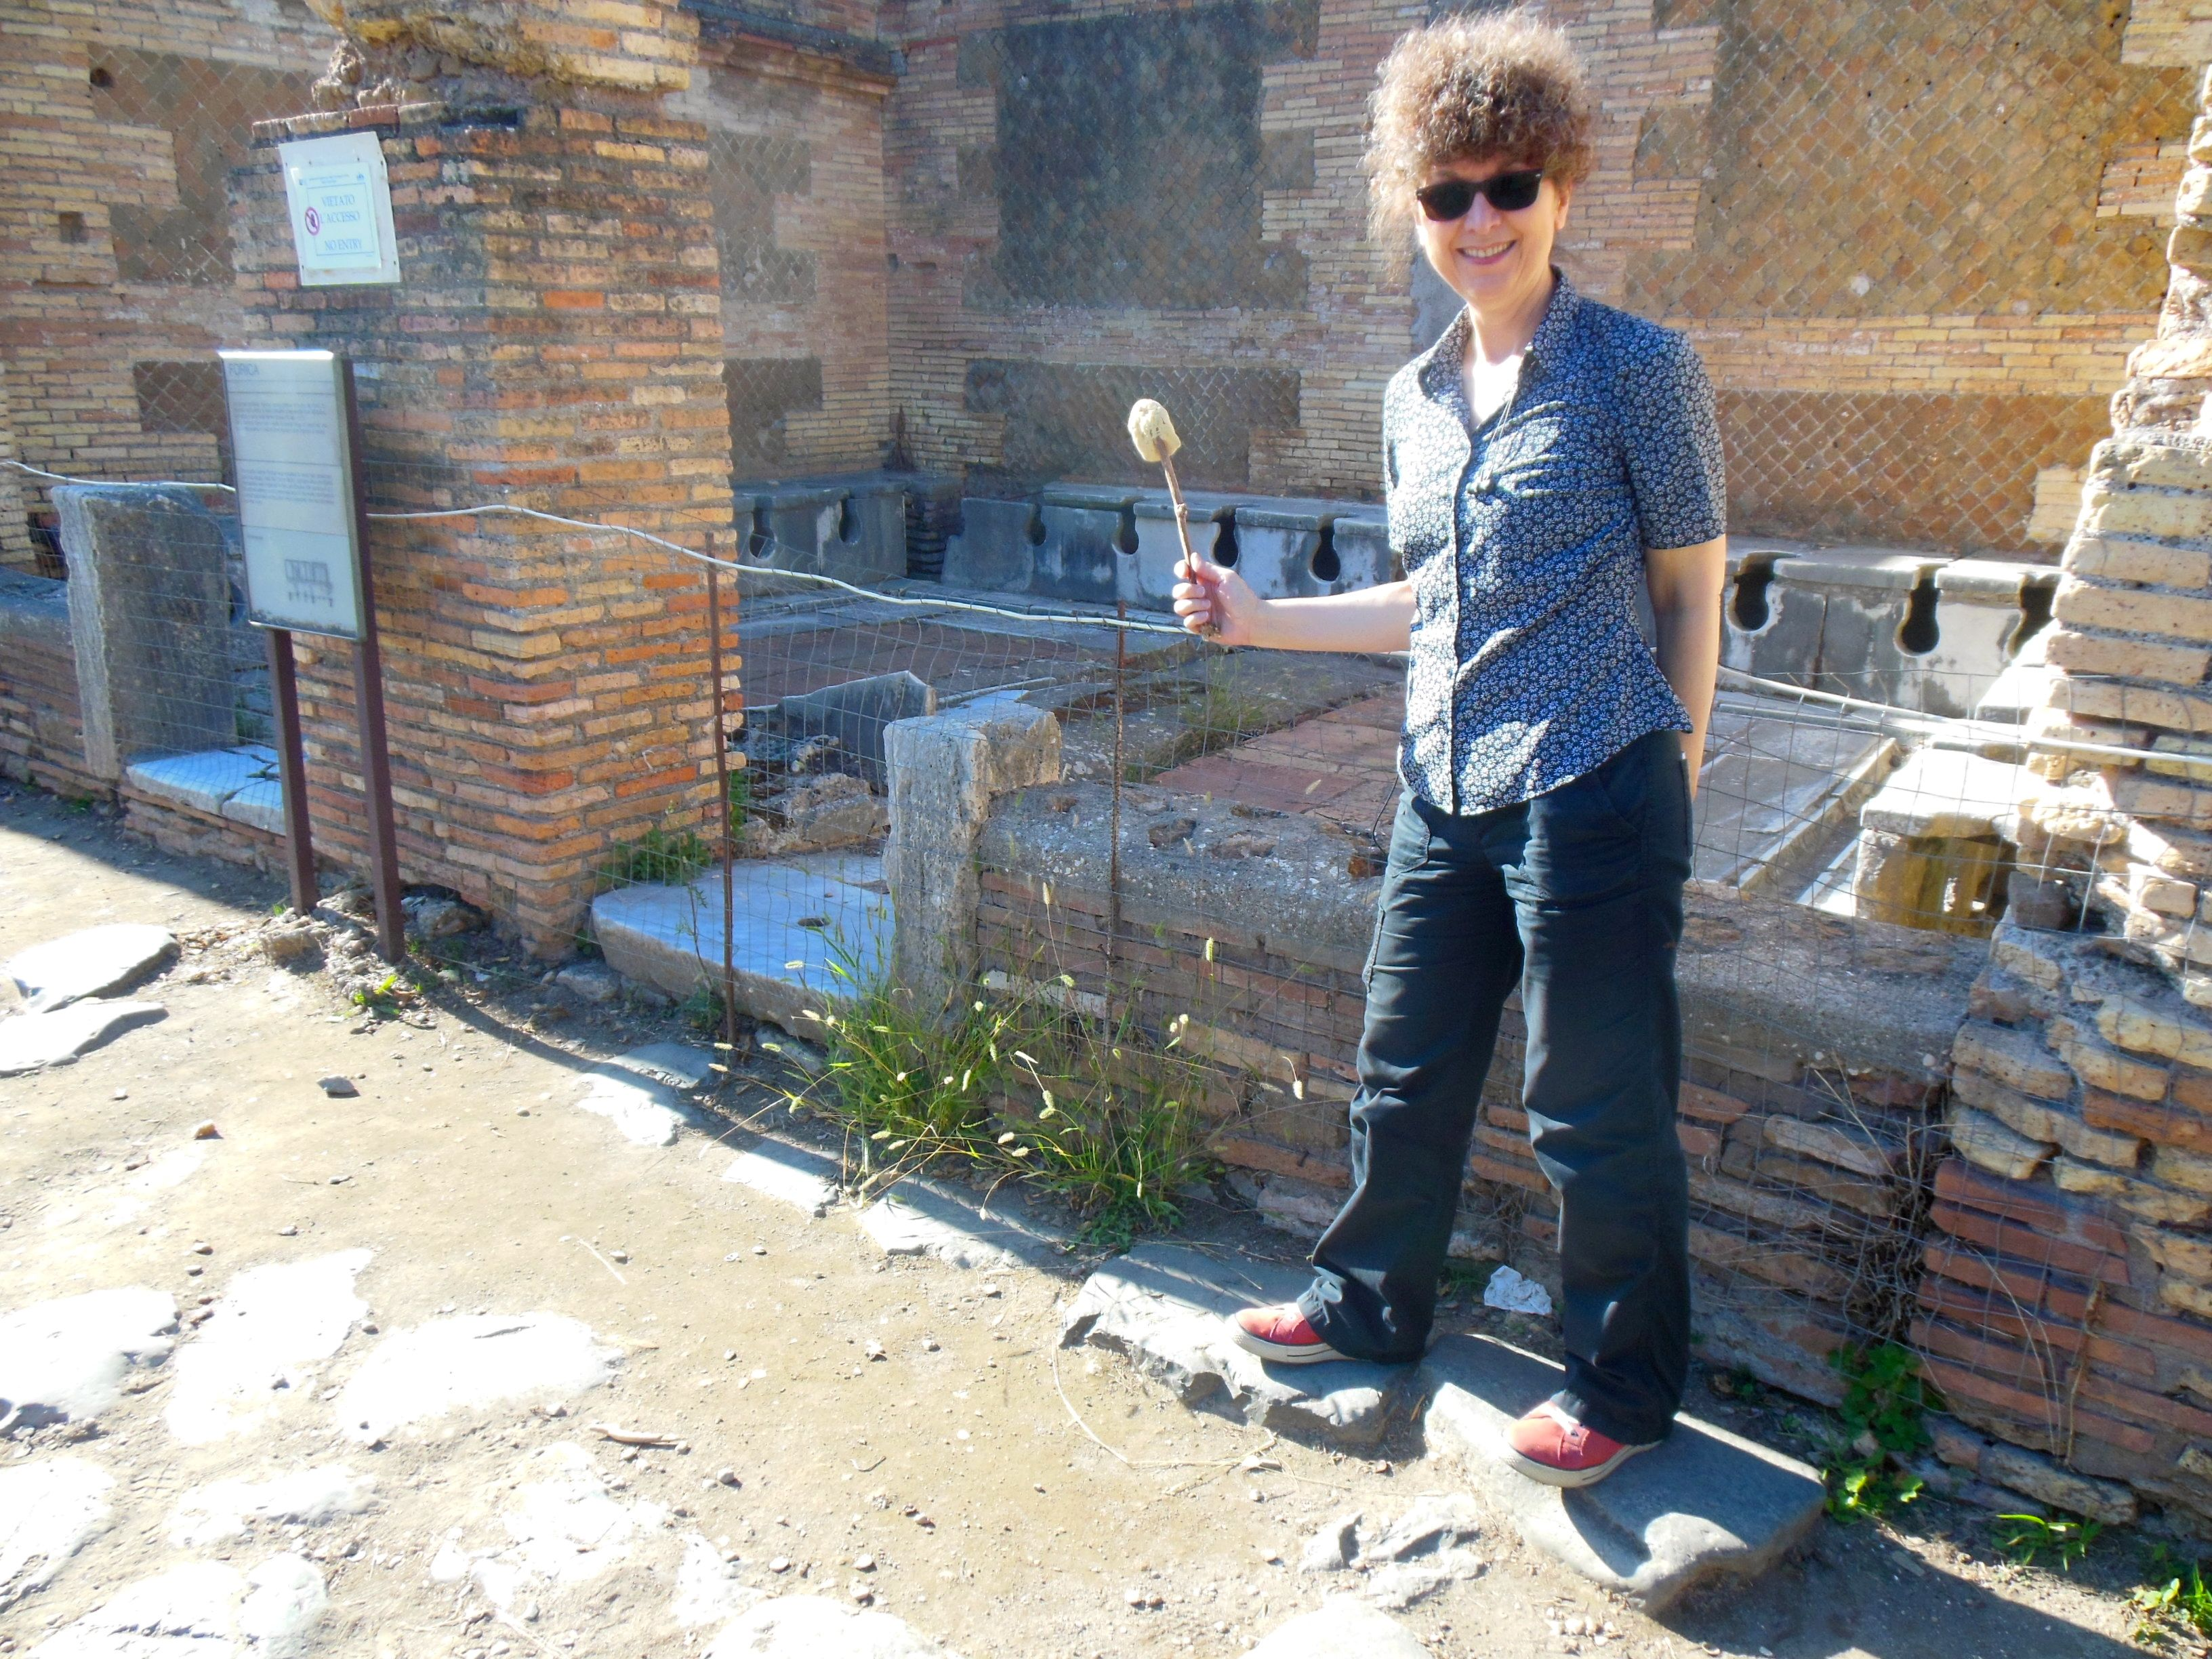 Roman Mysteries author Caroline Lawrence with a sponge-stick by the latrines in Ostia Antica. Sept 2013.